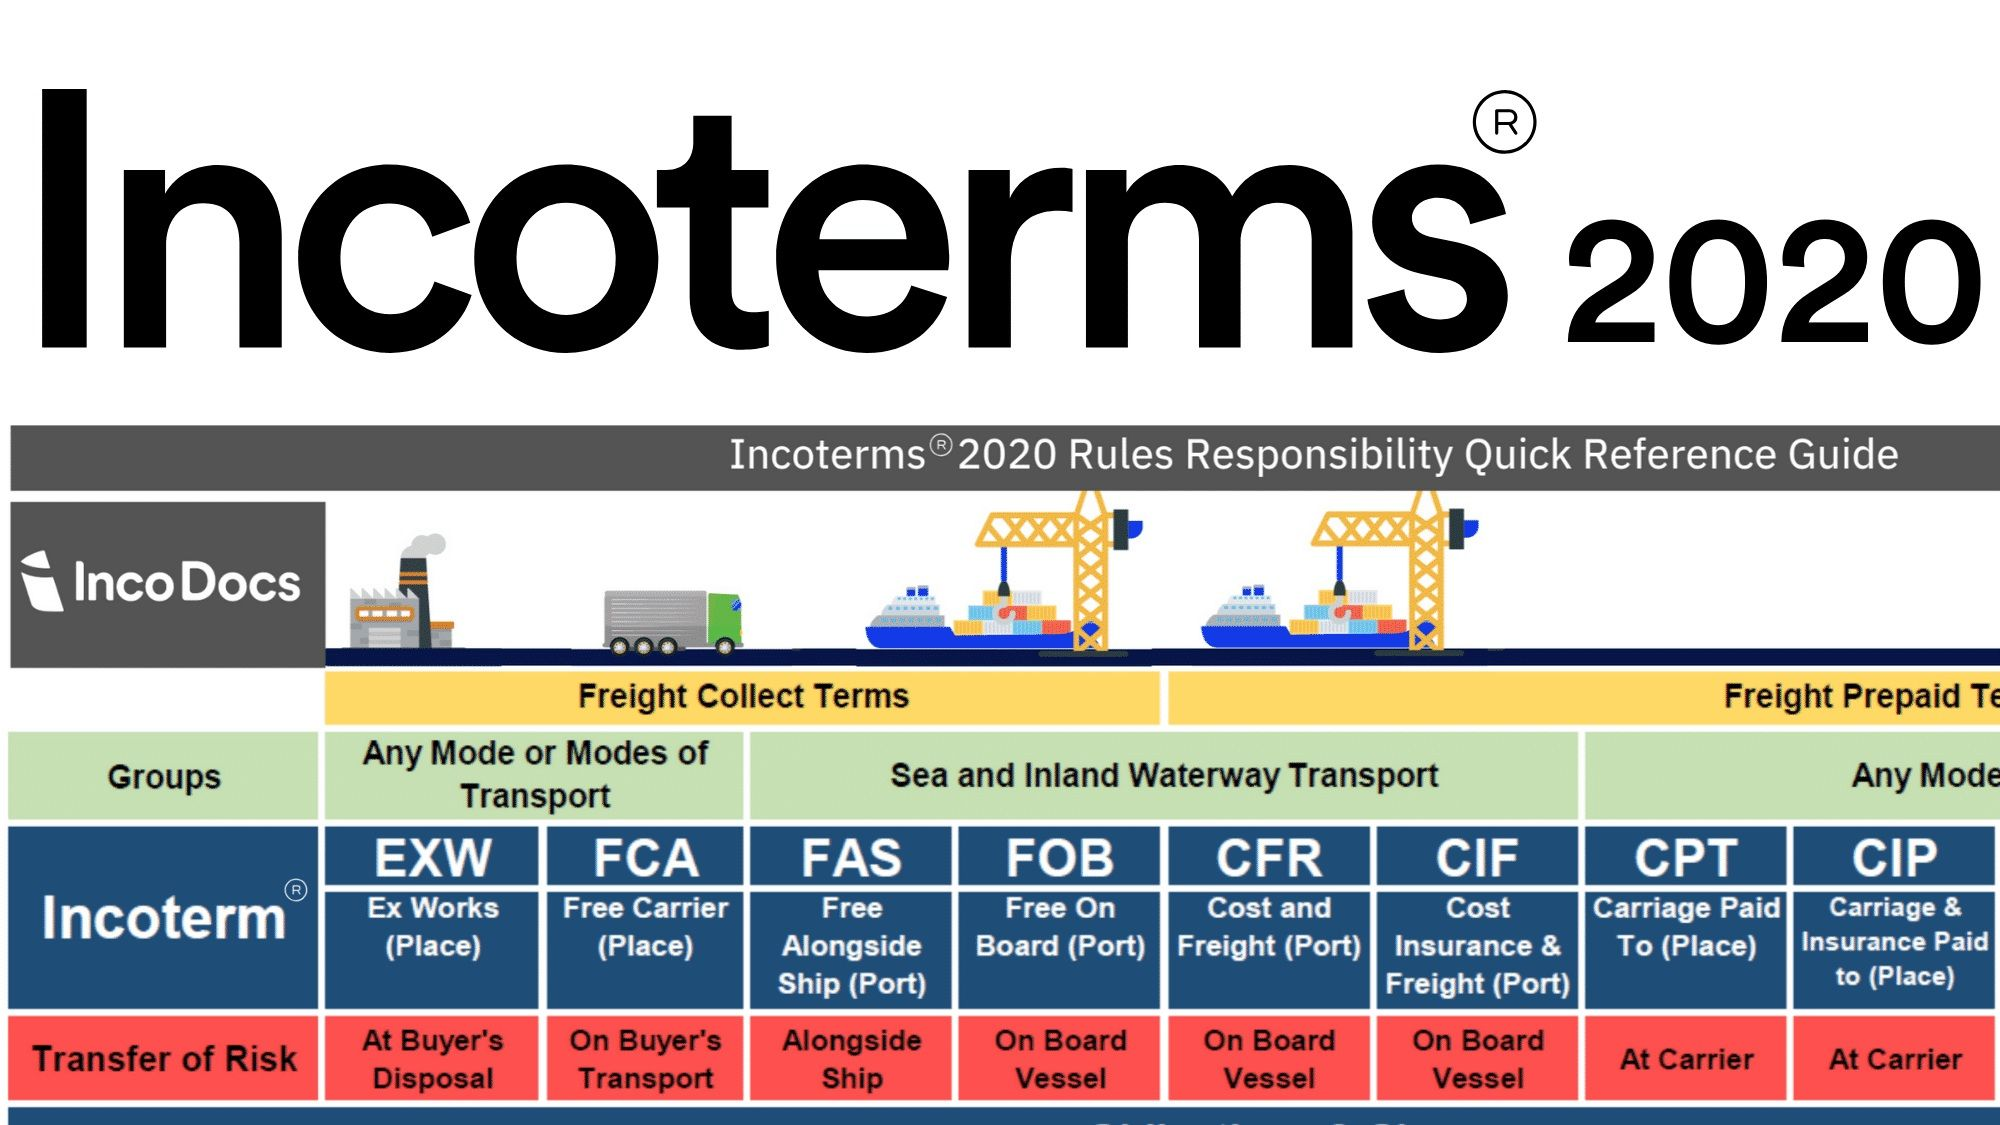 los Incoterms 2020